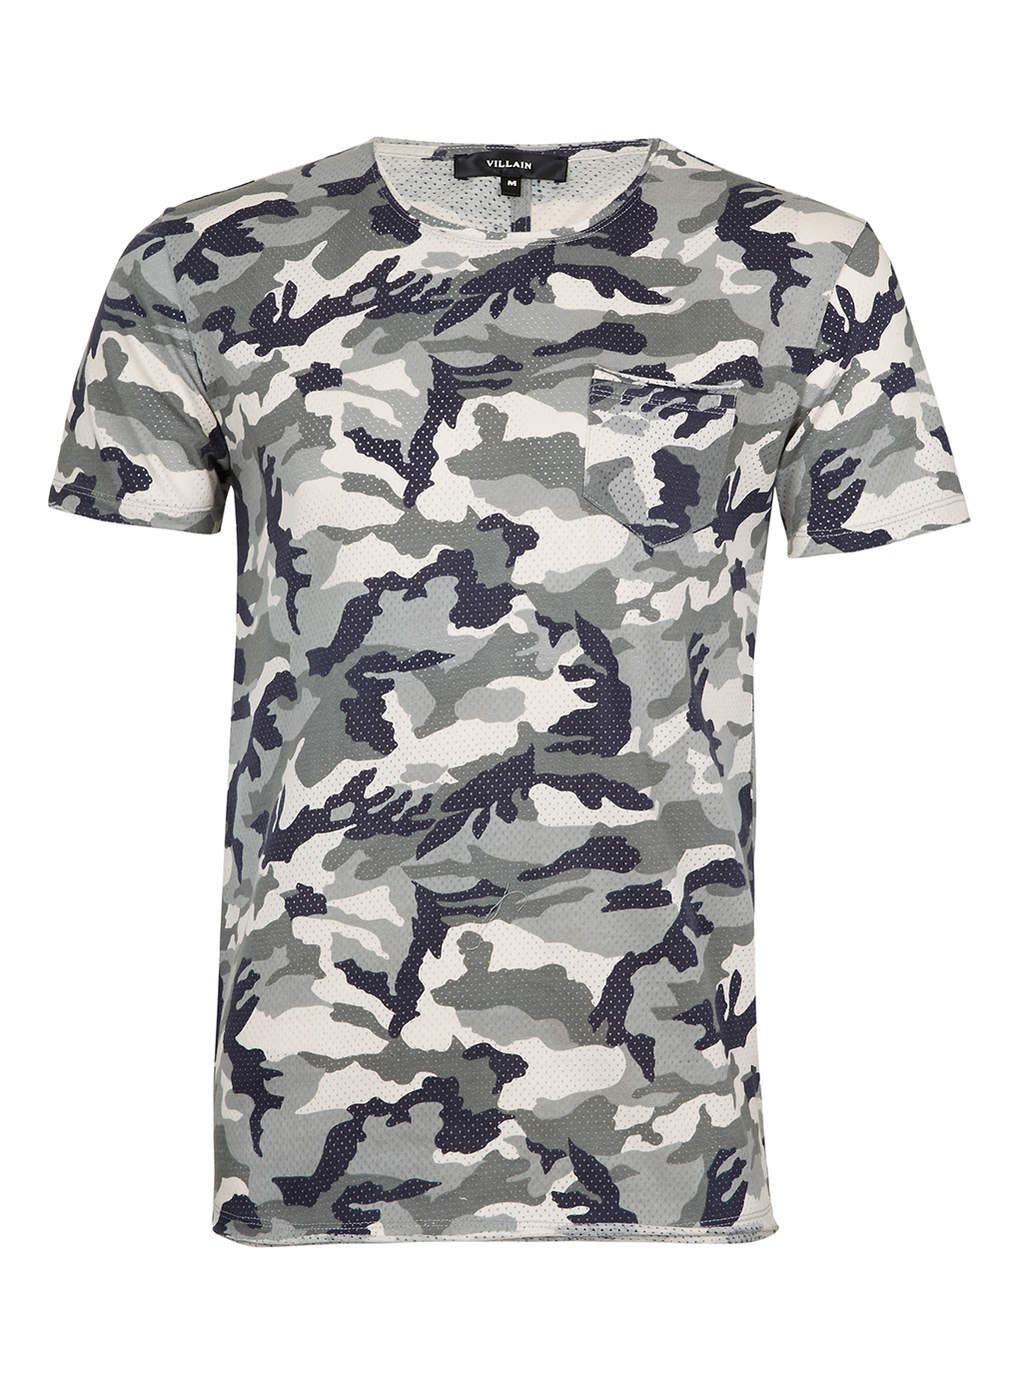 Villain perforated camo print t shirt in gray for men for Camo print t shirt